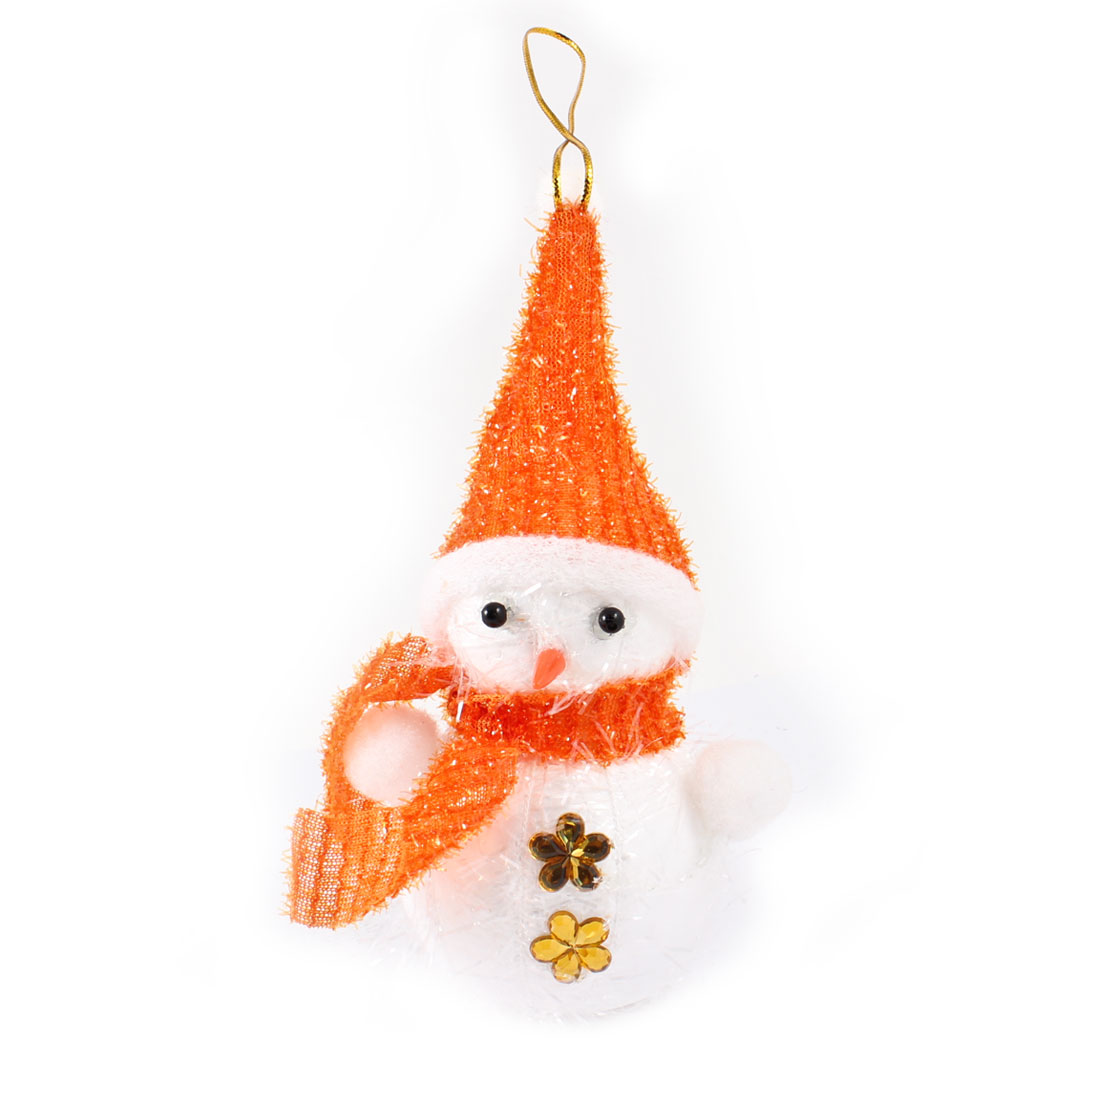 Orange Scarf Cap White Snowman Dangling Christmas Tree Hanging Ornament